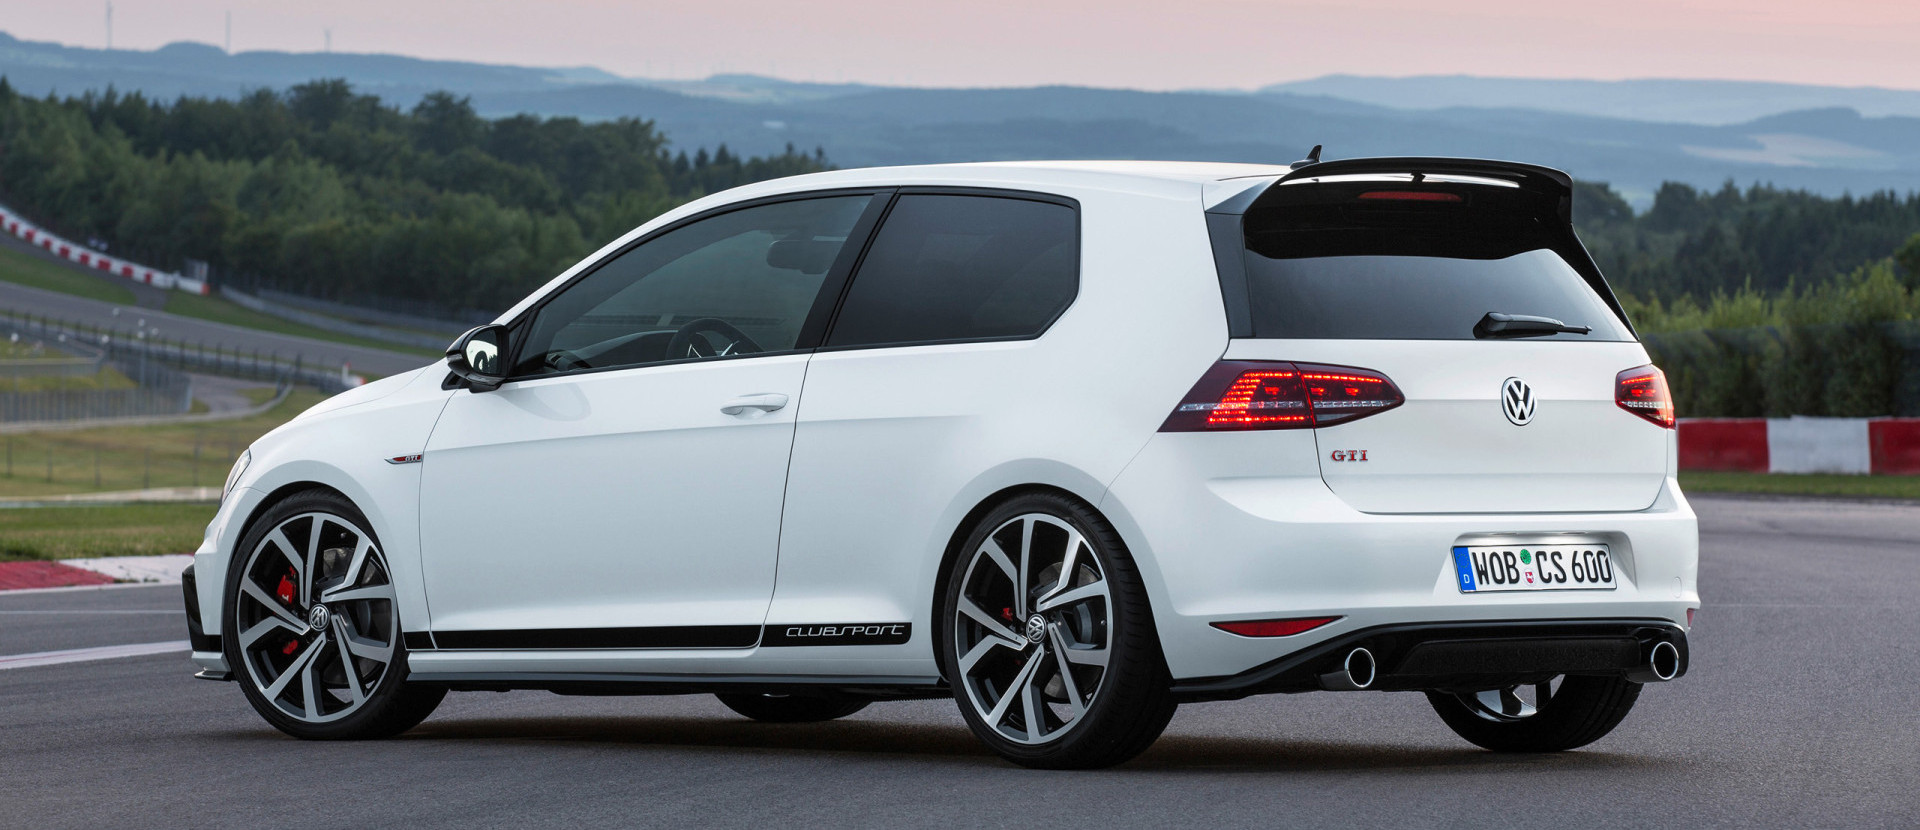 Jubilarni VW Golf GTI Clubsport sa 265 ks